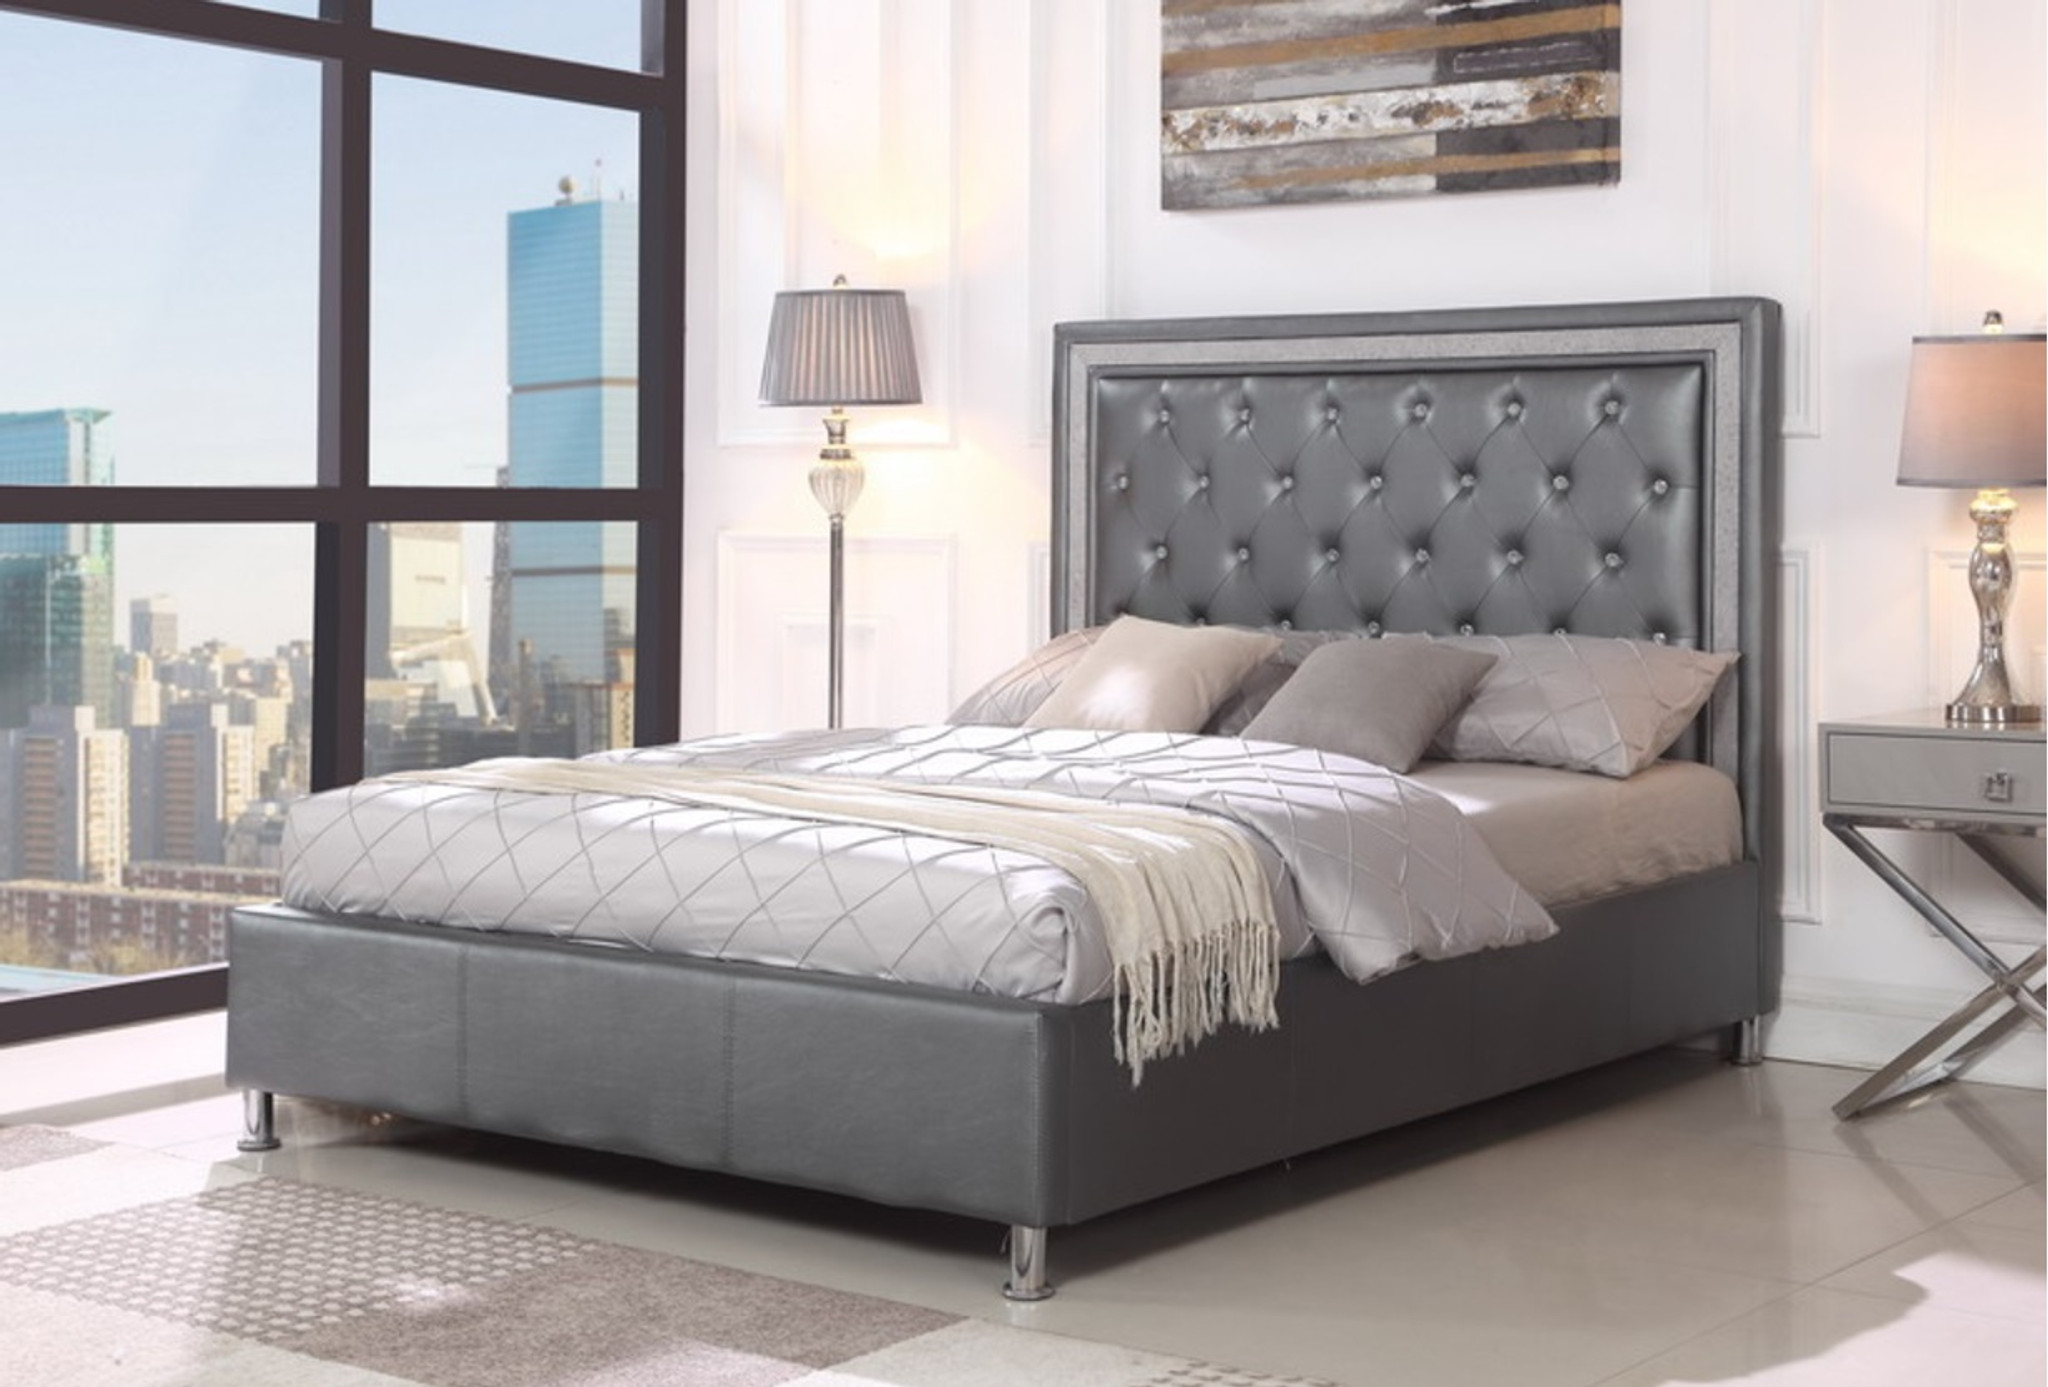 Leather Bed Frame Miccaela Gray Leather Tufted Platform Bed Frame And Mattress